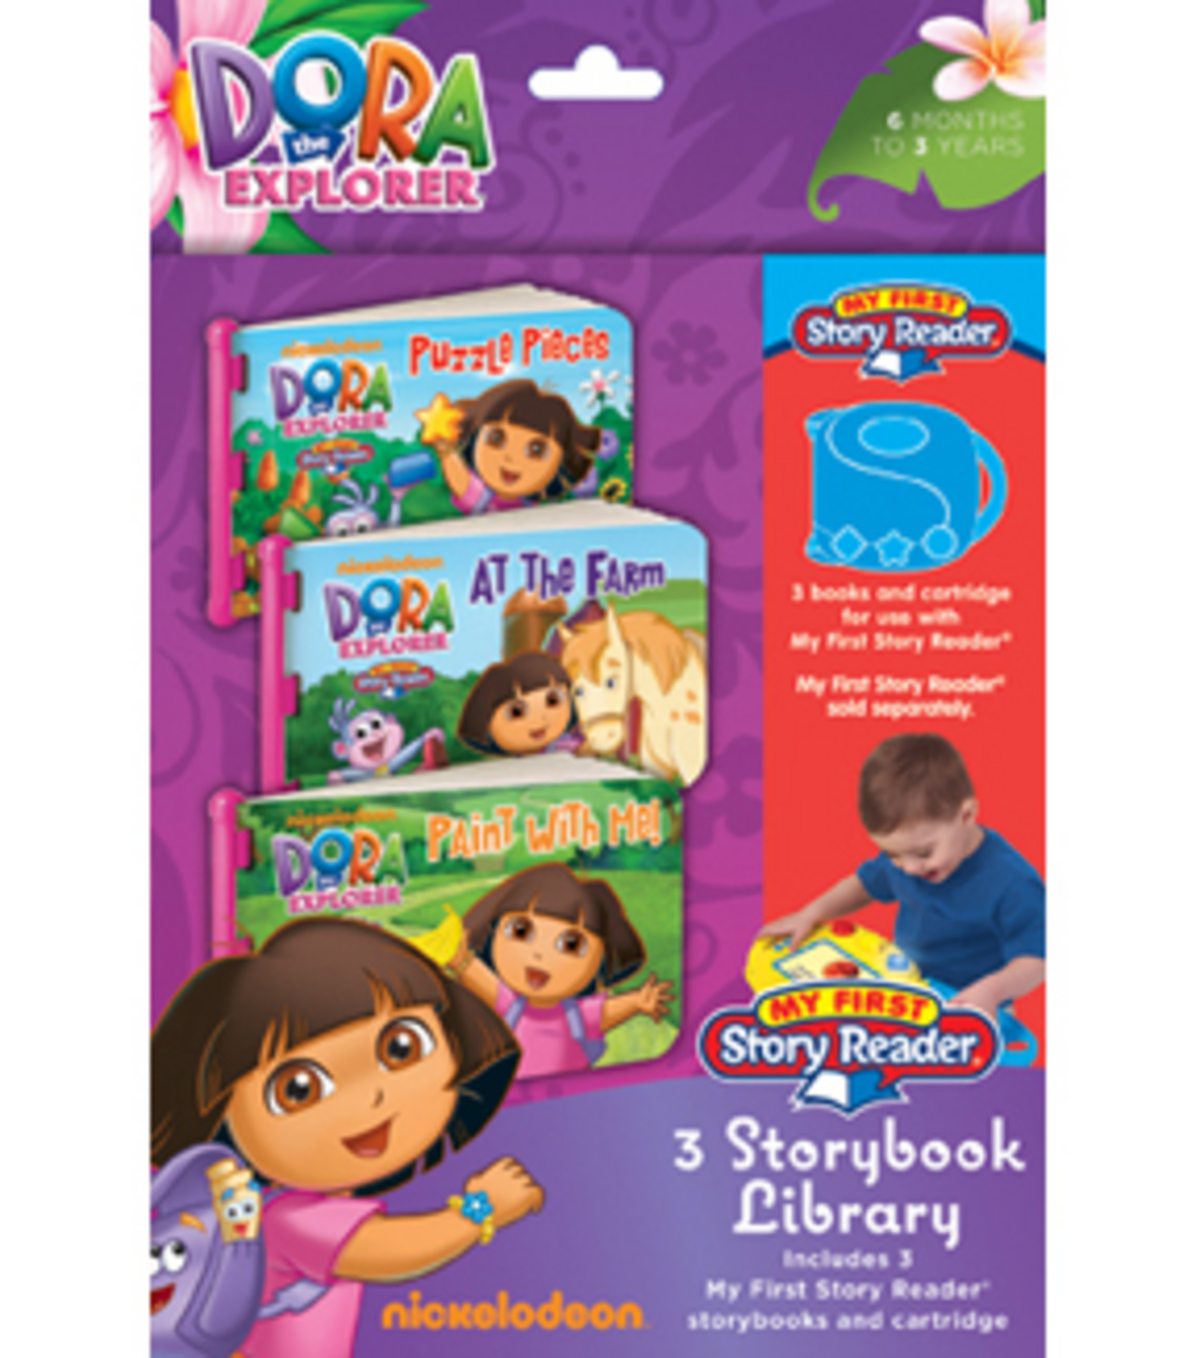 My First Story Reader 3-Storybook Library-Dora The Explorer